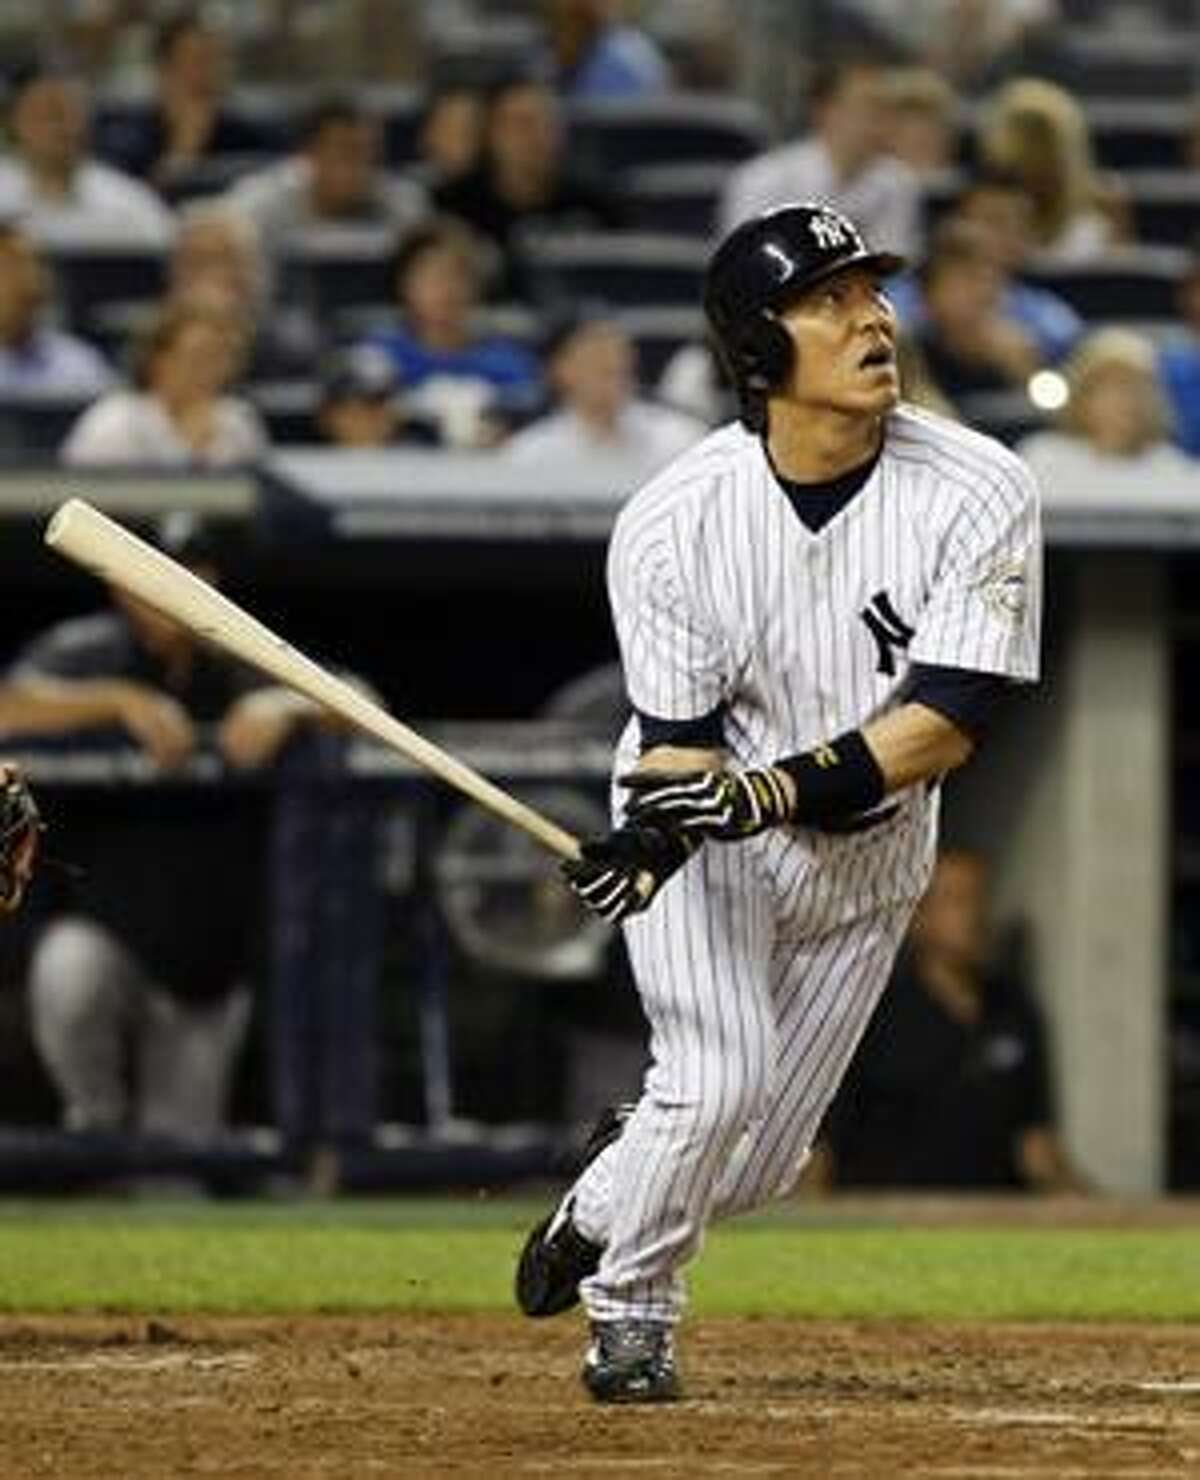 New York Yankees Hideki Matsui reacts as he flies out with Robinson Cano at first for the third out in the fifth inning of the Yankees' game against the Toronto Blue Jays at Yankee Stadium Tuesday.